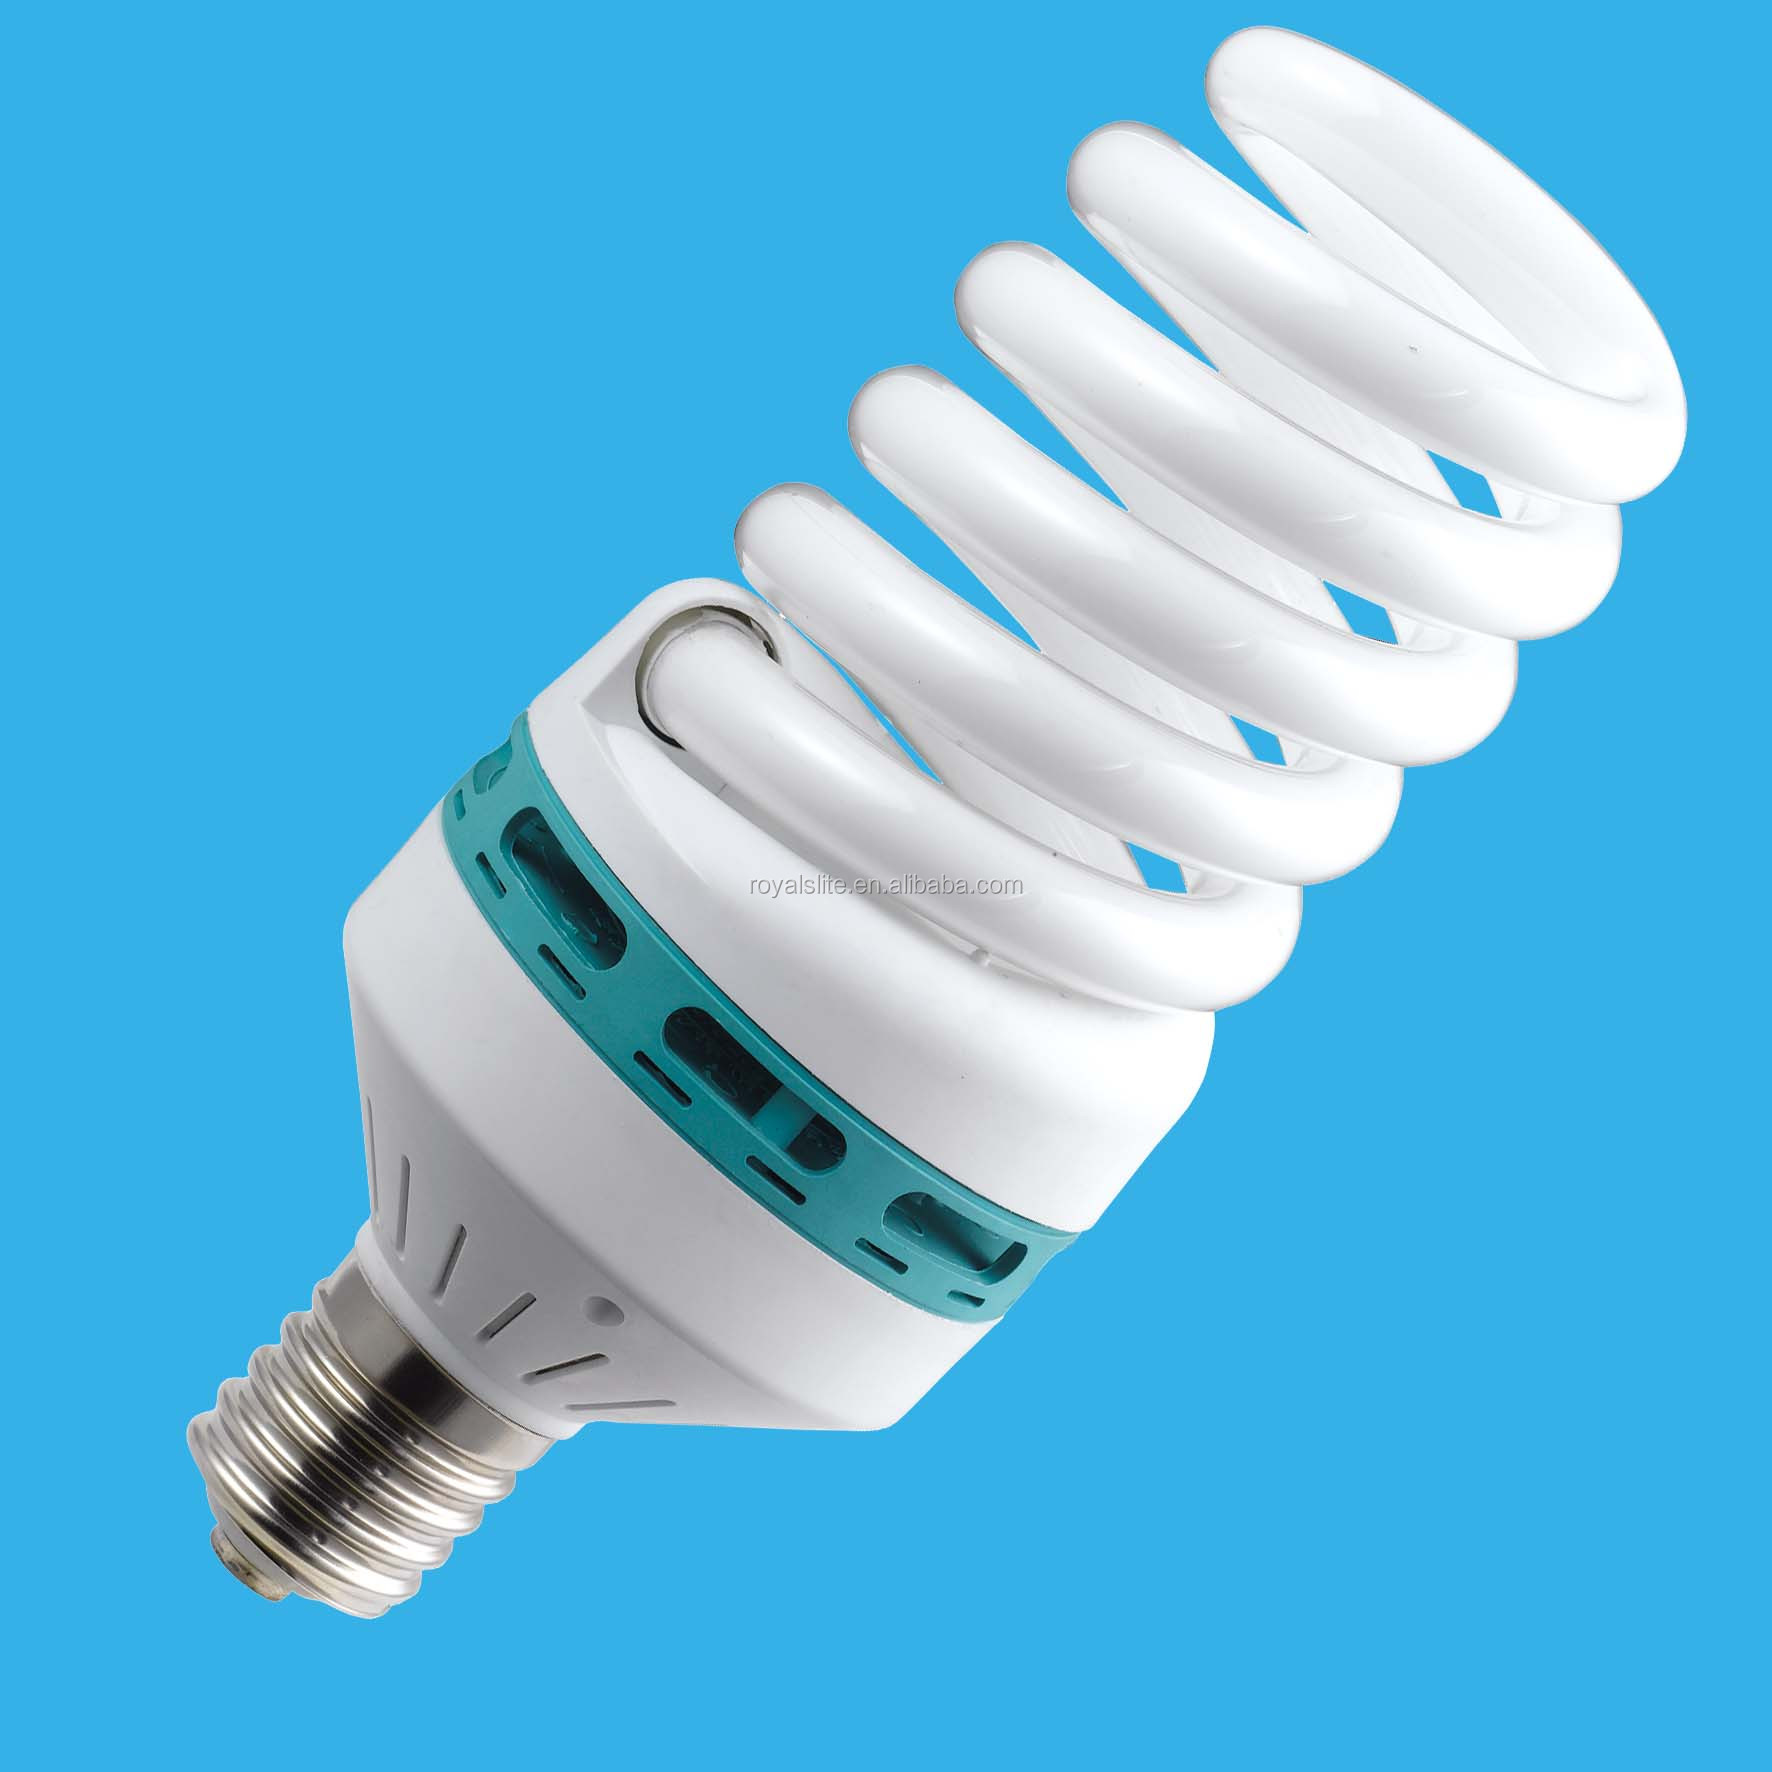 2016 new lighting lamp e27 b22 e40 efficient energy saving bulb cfl glass tube compact fluorescent lamp with ce rohs ul